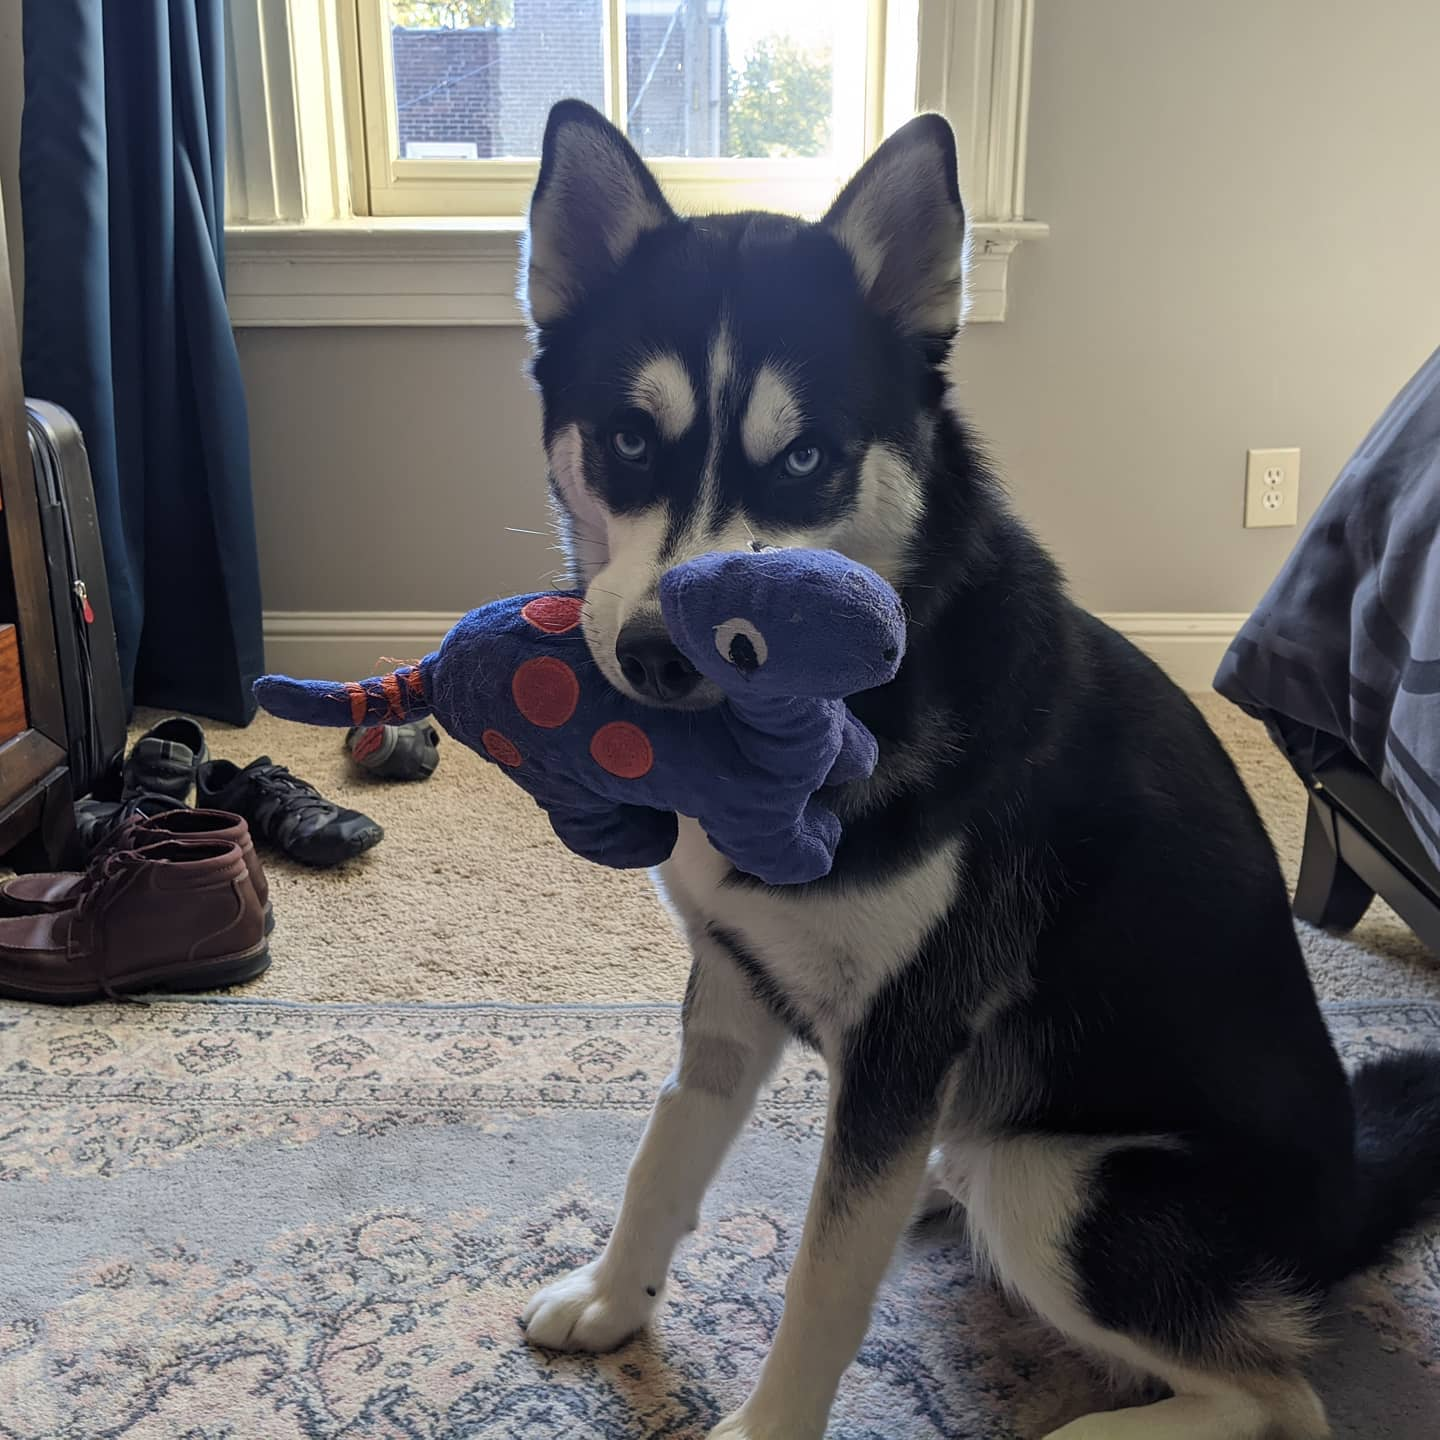 He has had this dino since we got him and his sister back in April. He doesn't appreciate it when others mess with it #stlnanuq #siberianhusky #huskiesofinstagram